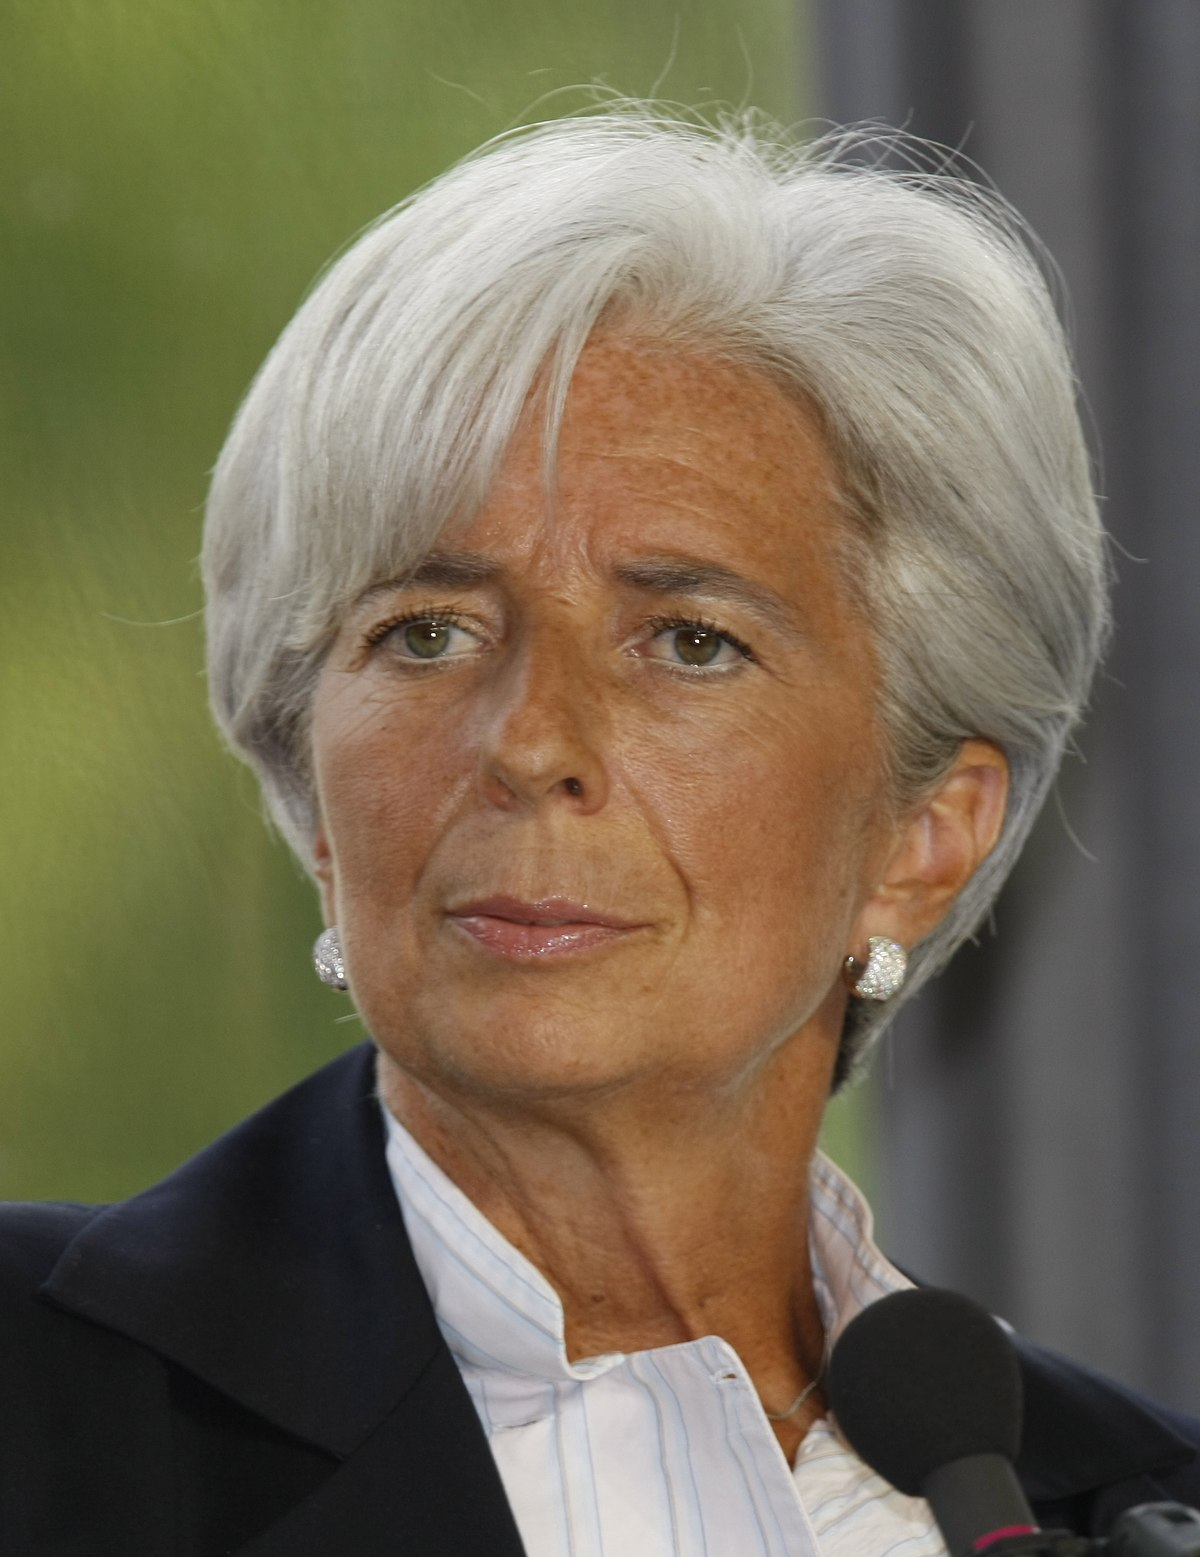 christine lagarde 43 records for christine lagarde find christine lagarde's phone, address, and email on spokeo, the leading online directory.